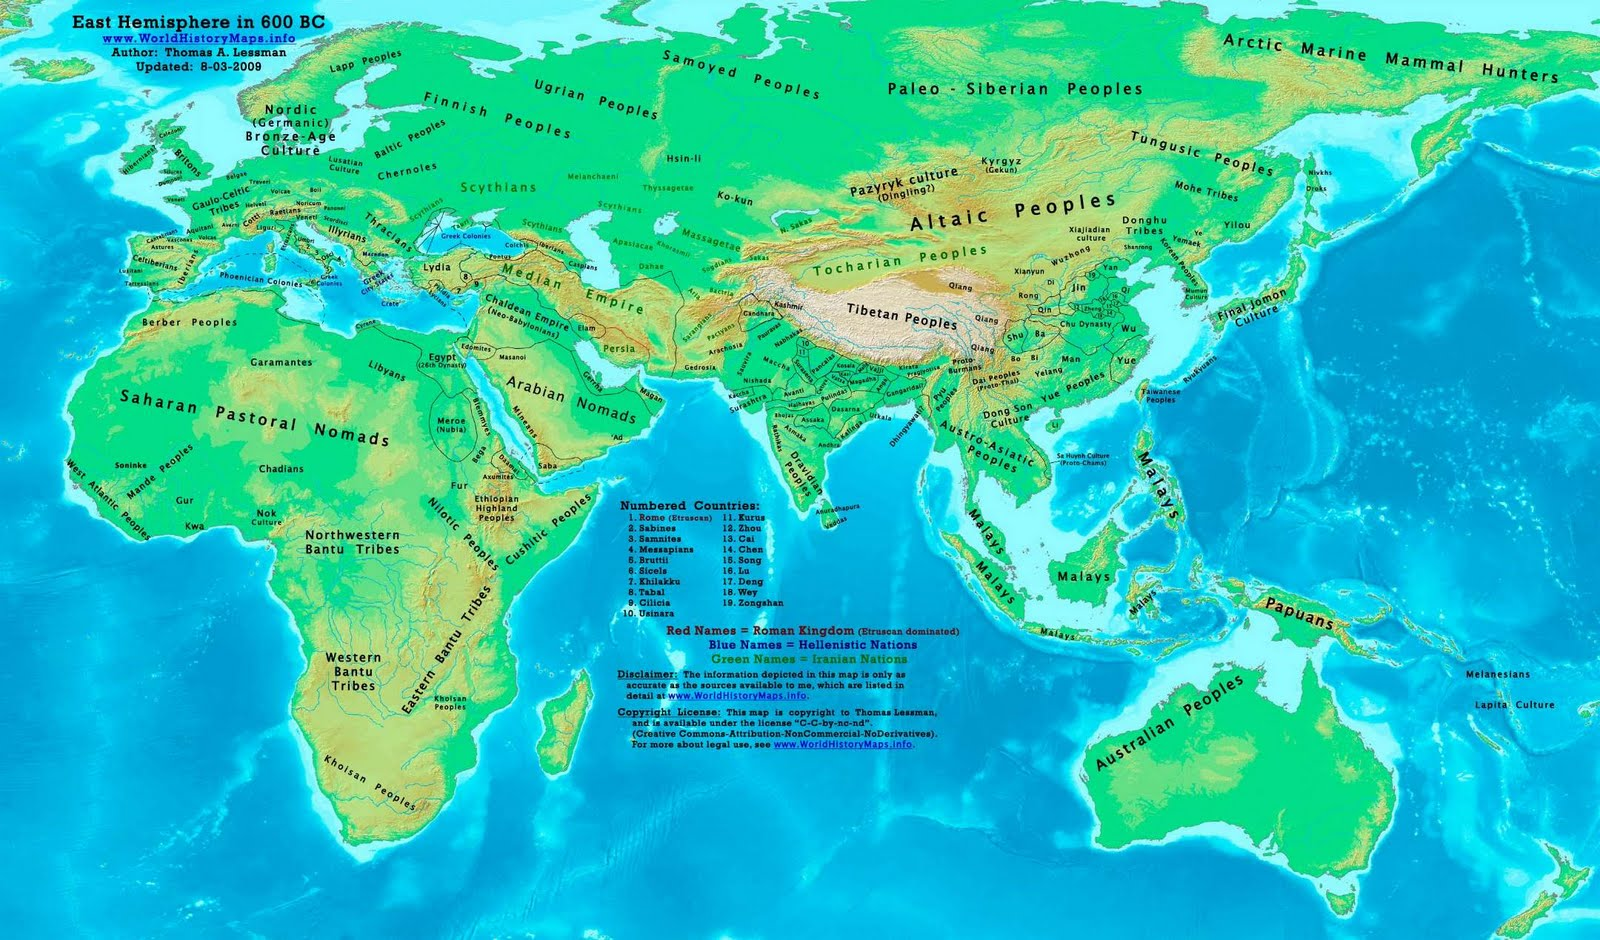 Historical maps: East Hemisphere Historical Map In 600 BC